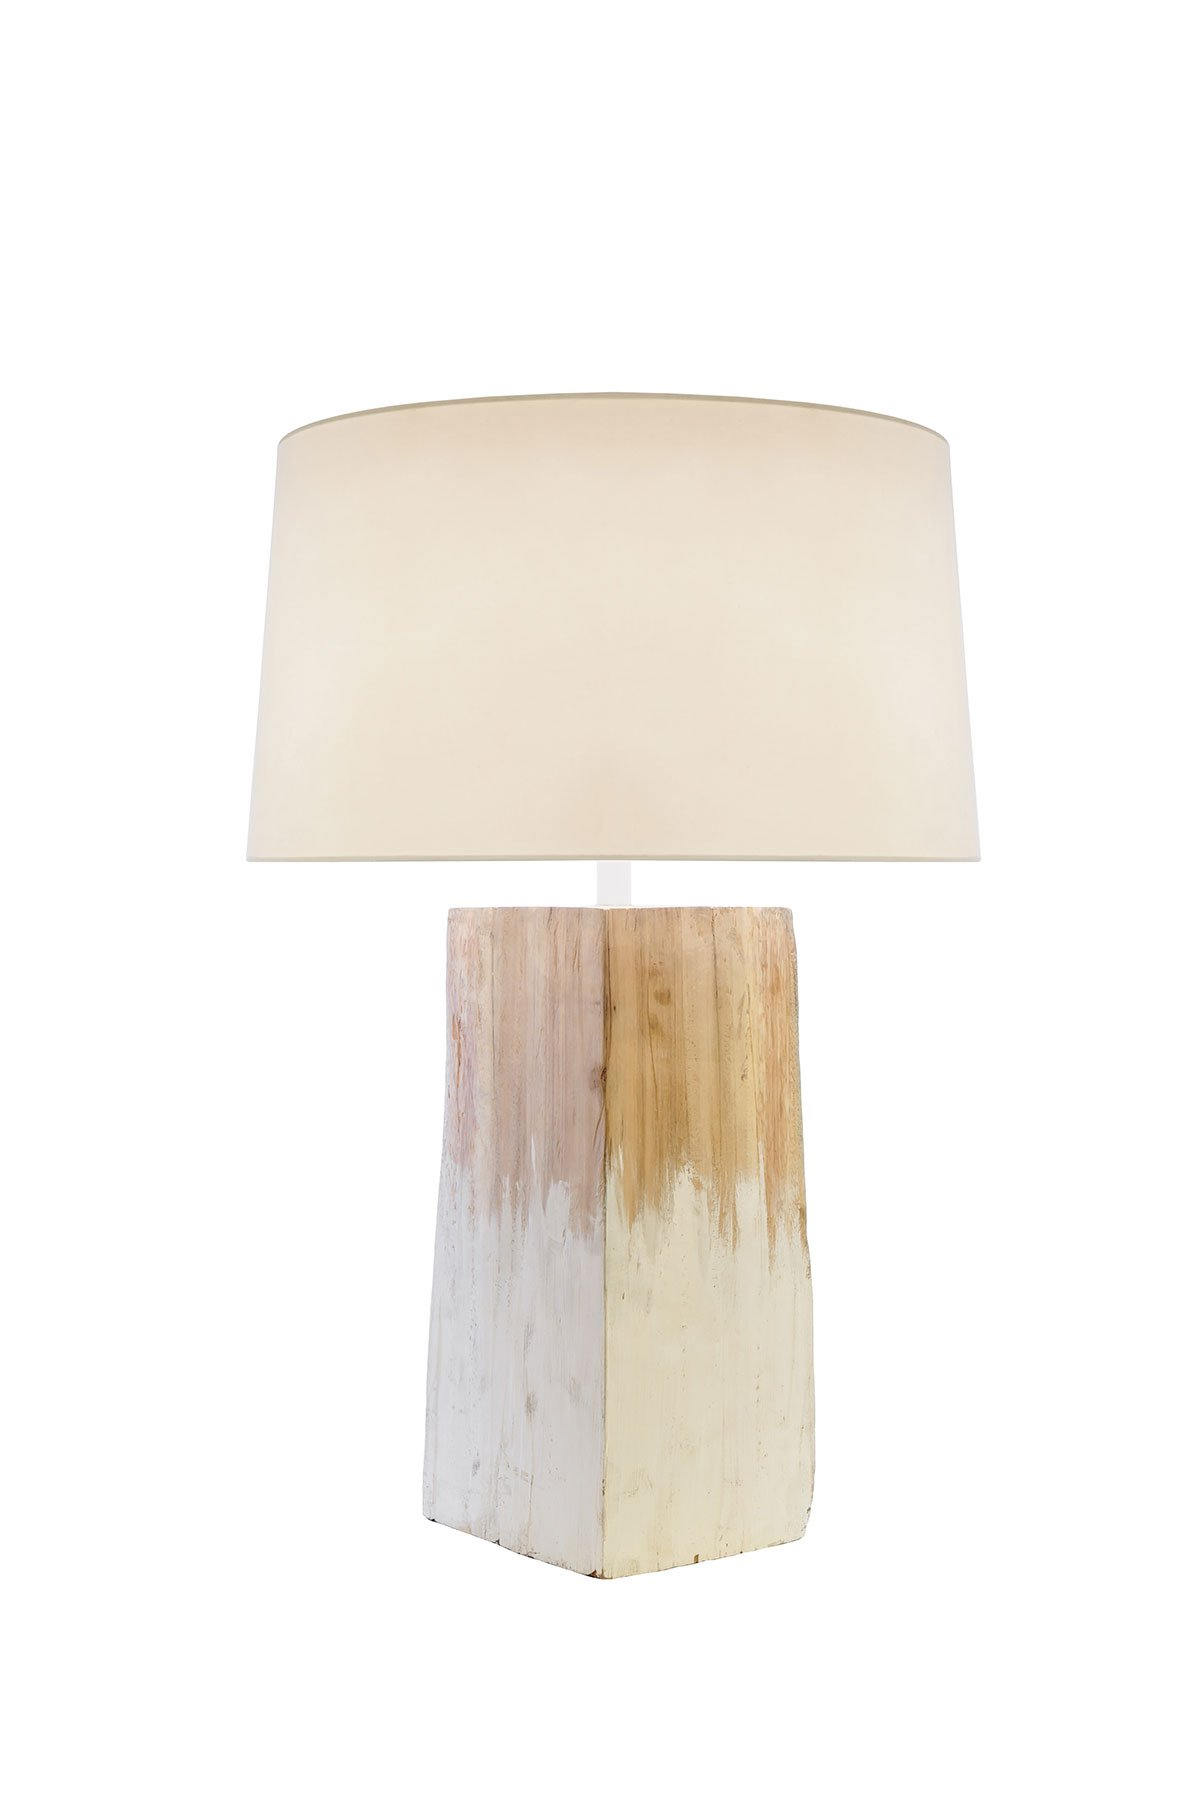 Stolní lampa THIS & THAT – 45 × 41 × 64 cm